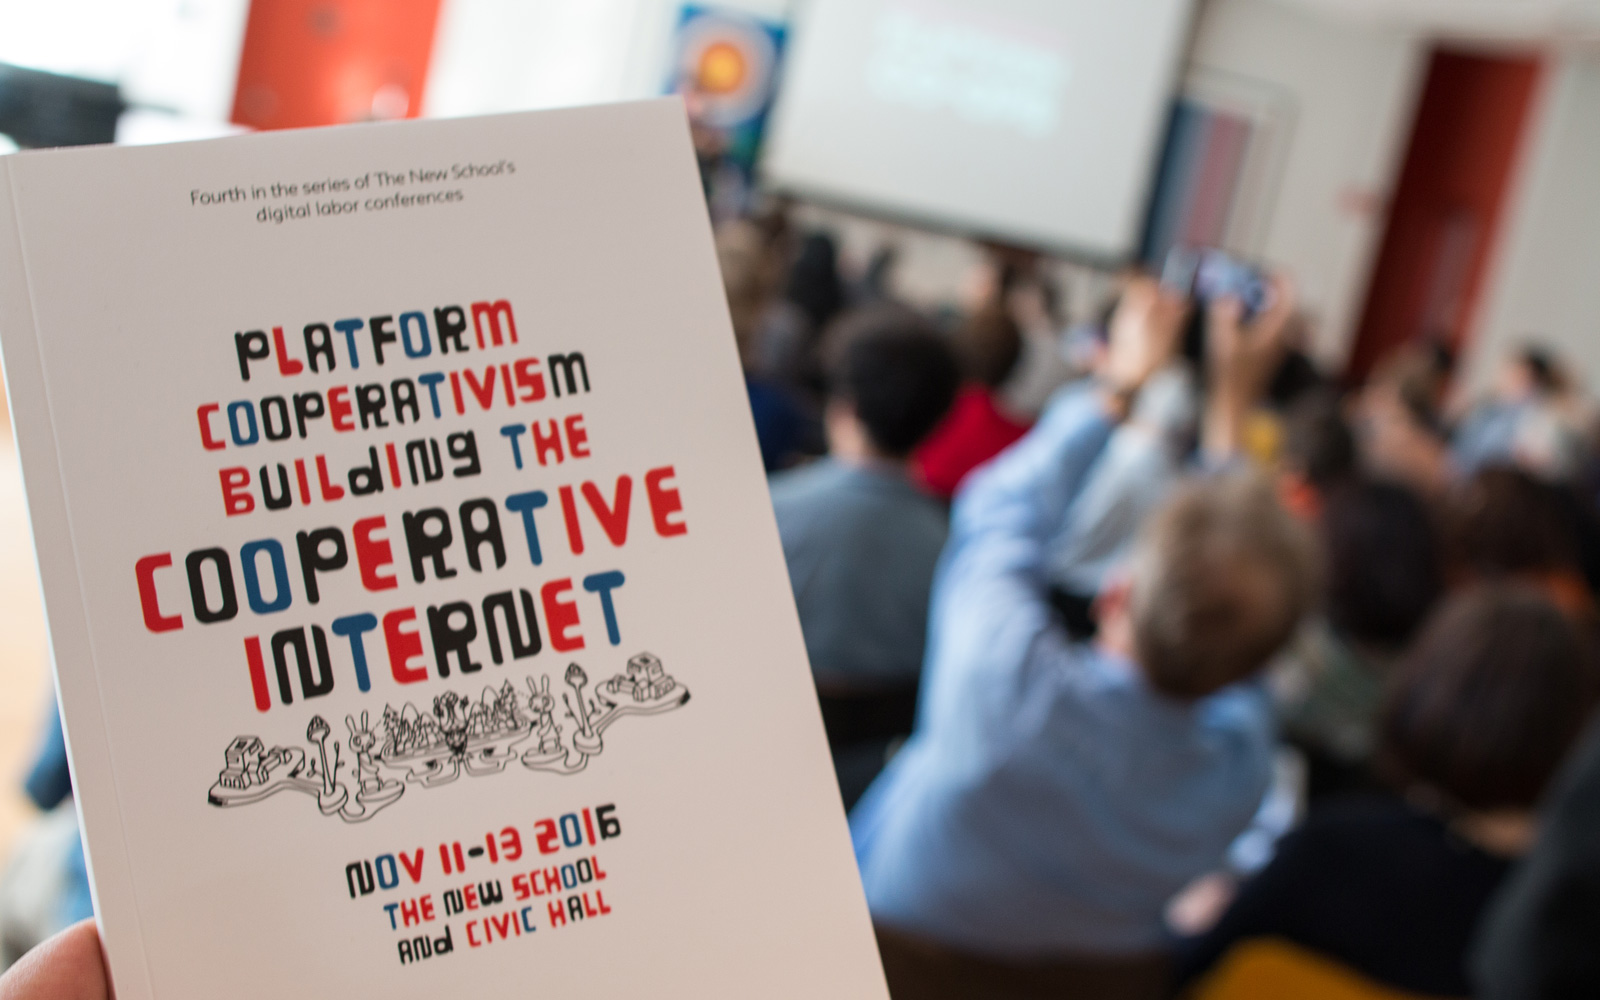 Platform Cooperativism 2016: Building the Cooperative Internet. New York, 2016